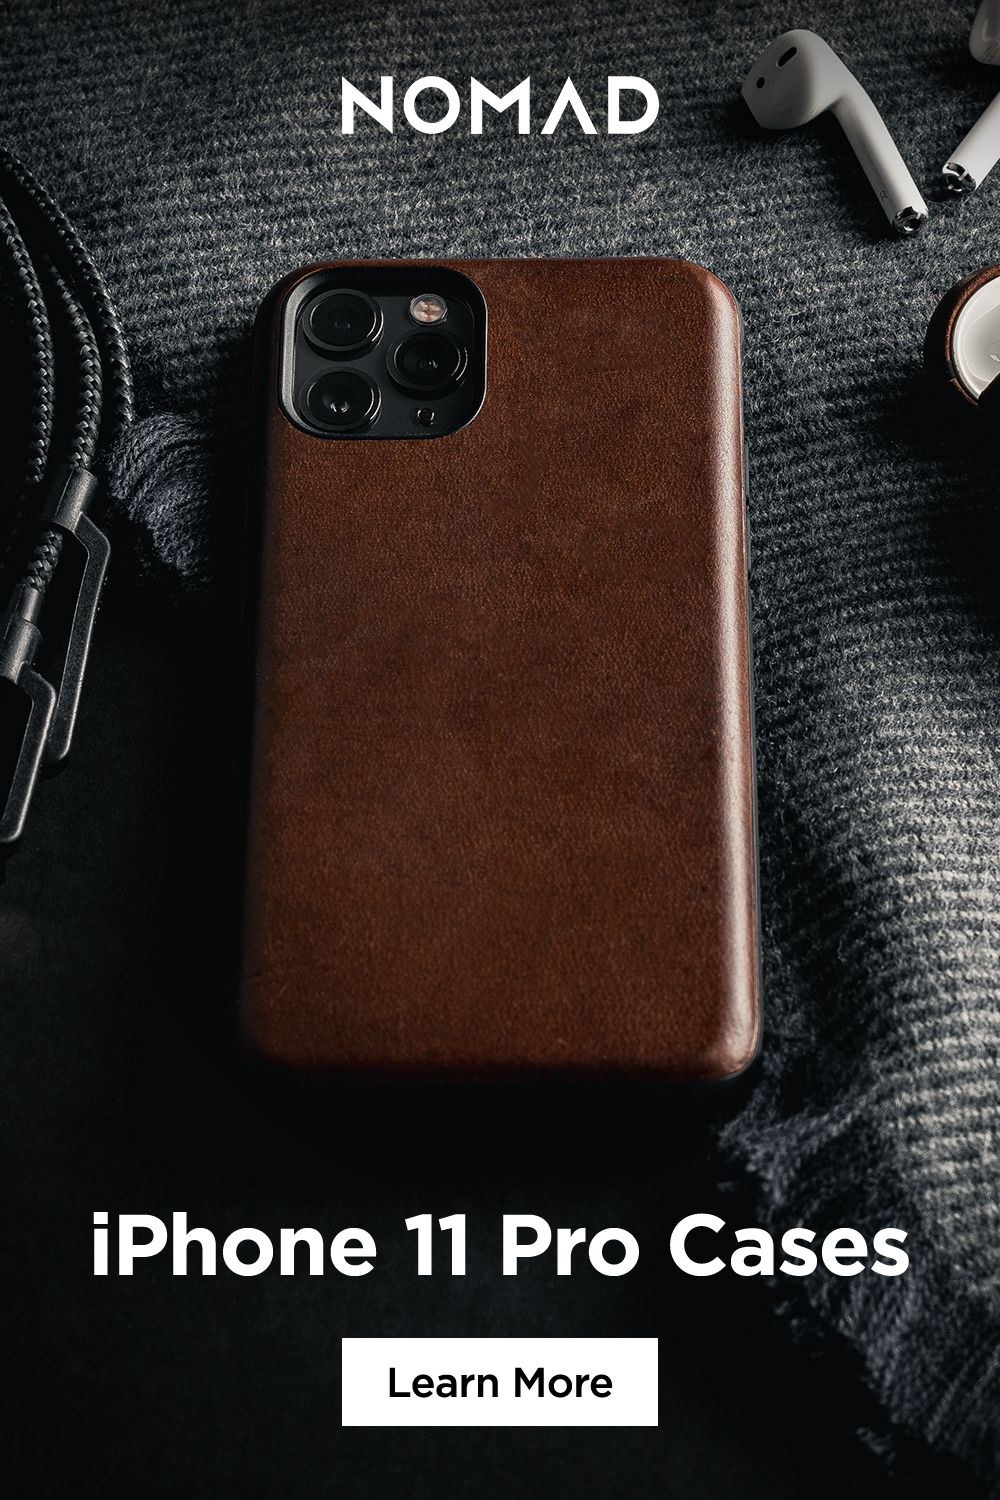 Nomad S Premium American Leather Cases For Iphone 11 Iphone 11 Pro And Iphone 11 Pro Max Not Only Look Great But Feel Grea Iphone Iphone Upgrade Iphone Cases